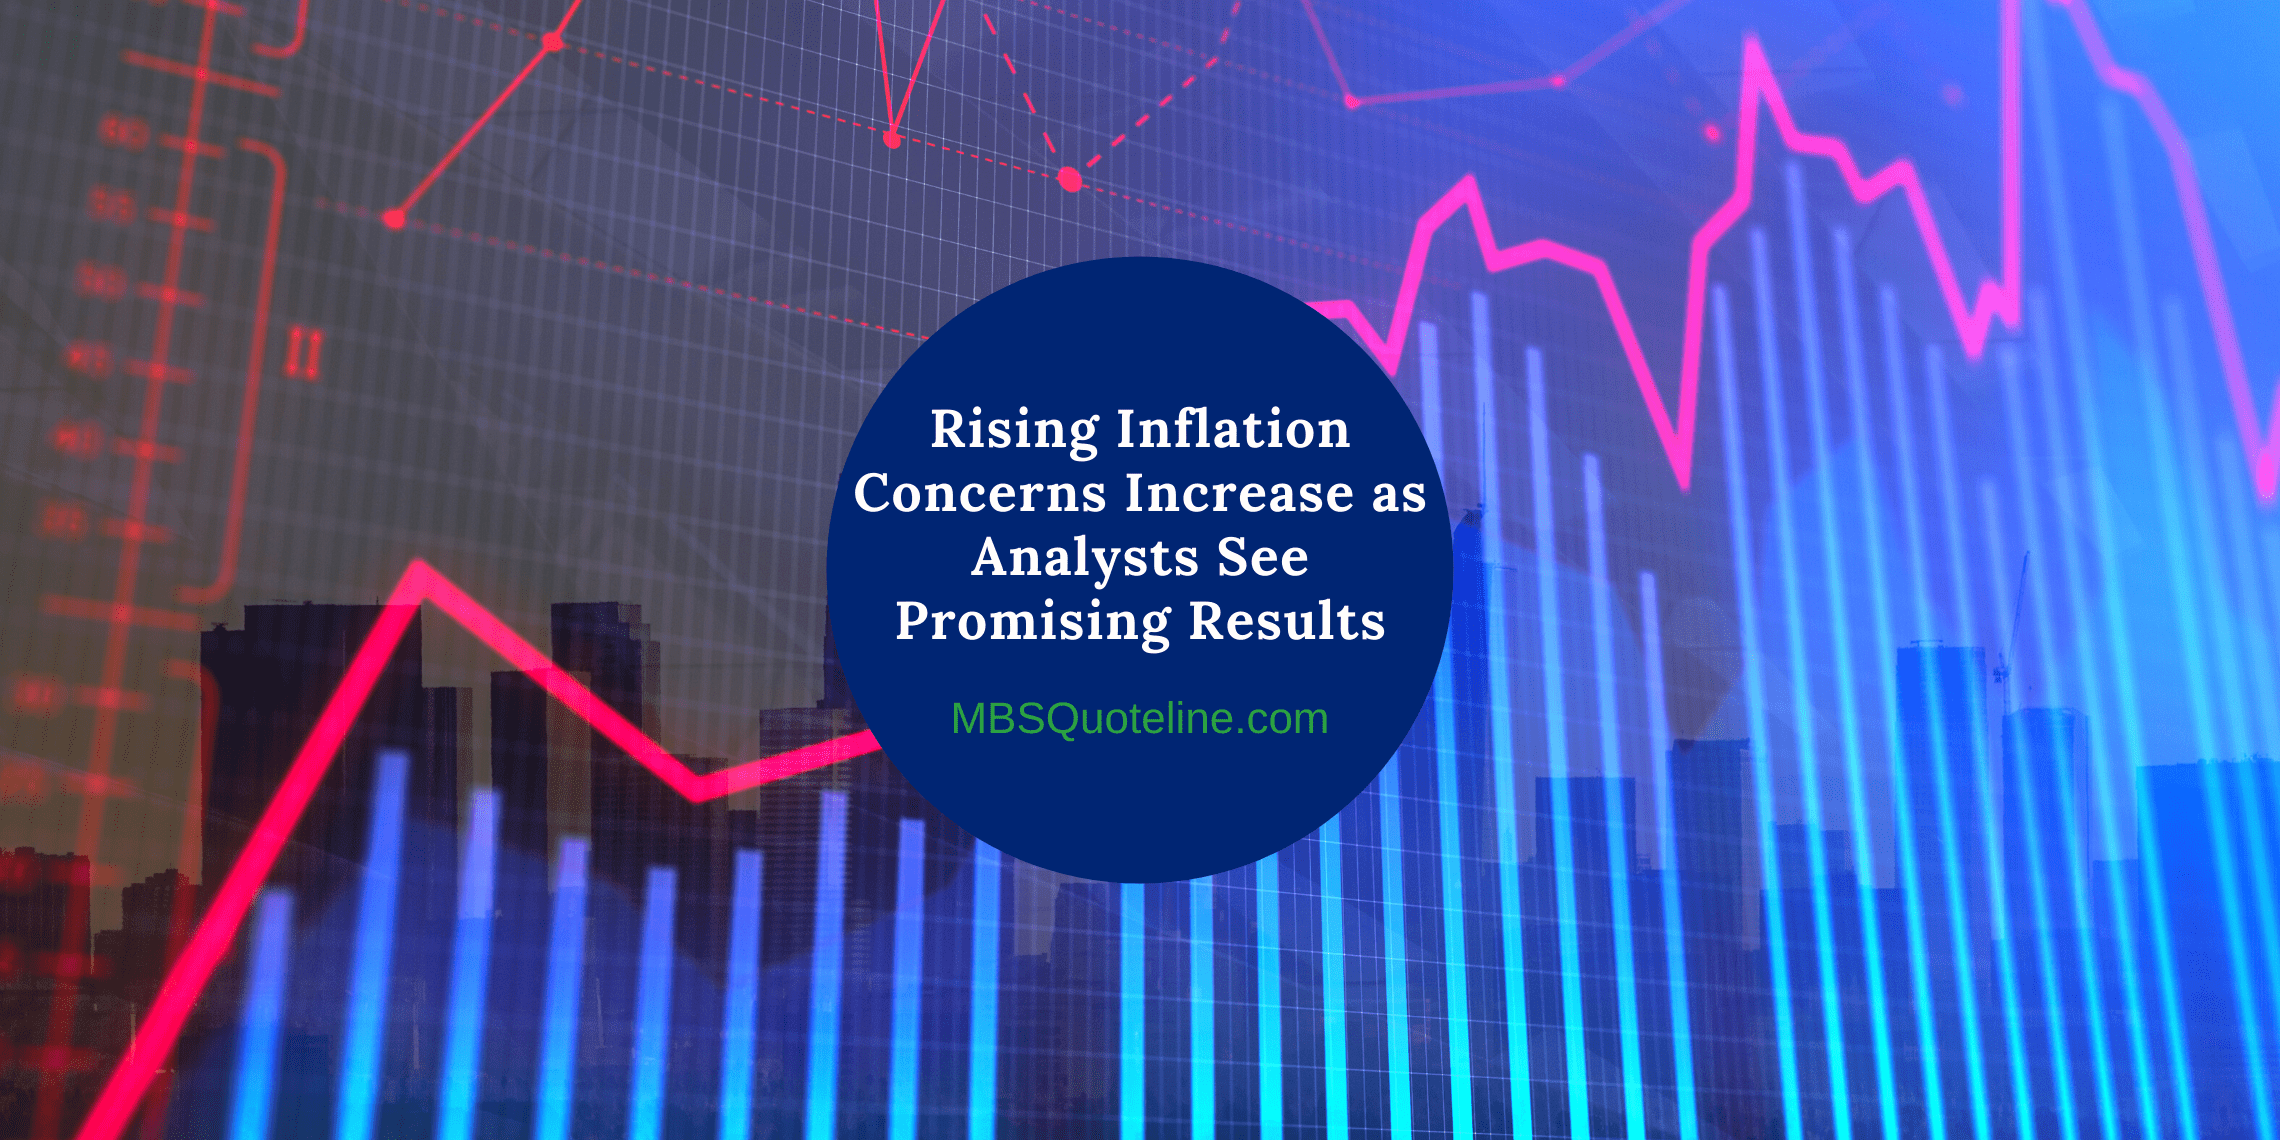 rising inflation concerns increase analysts see promising results mortgagetime mbsquoteline featured